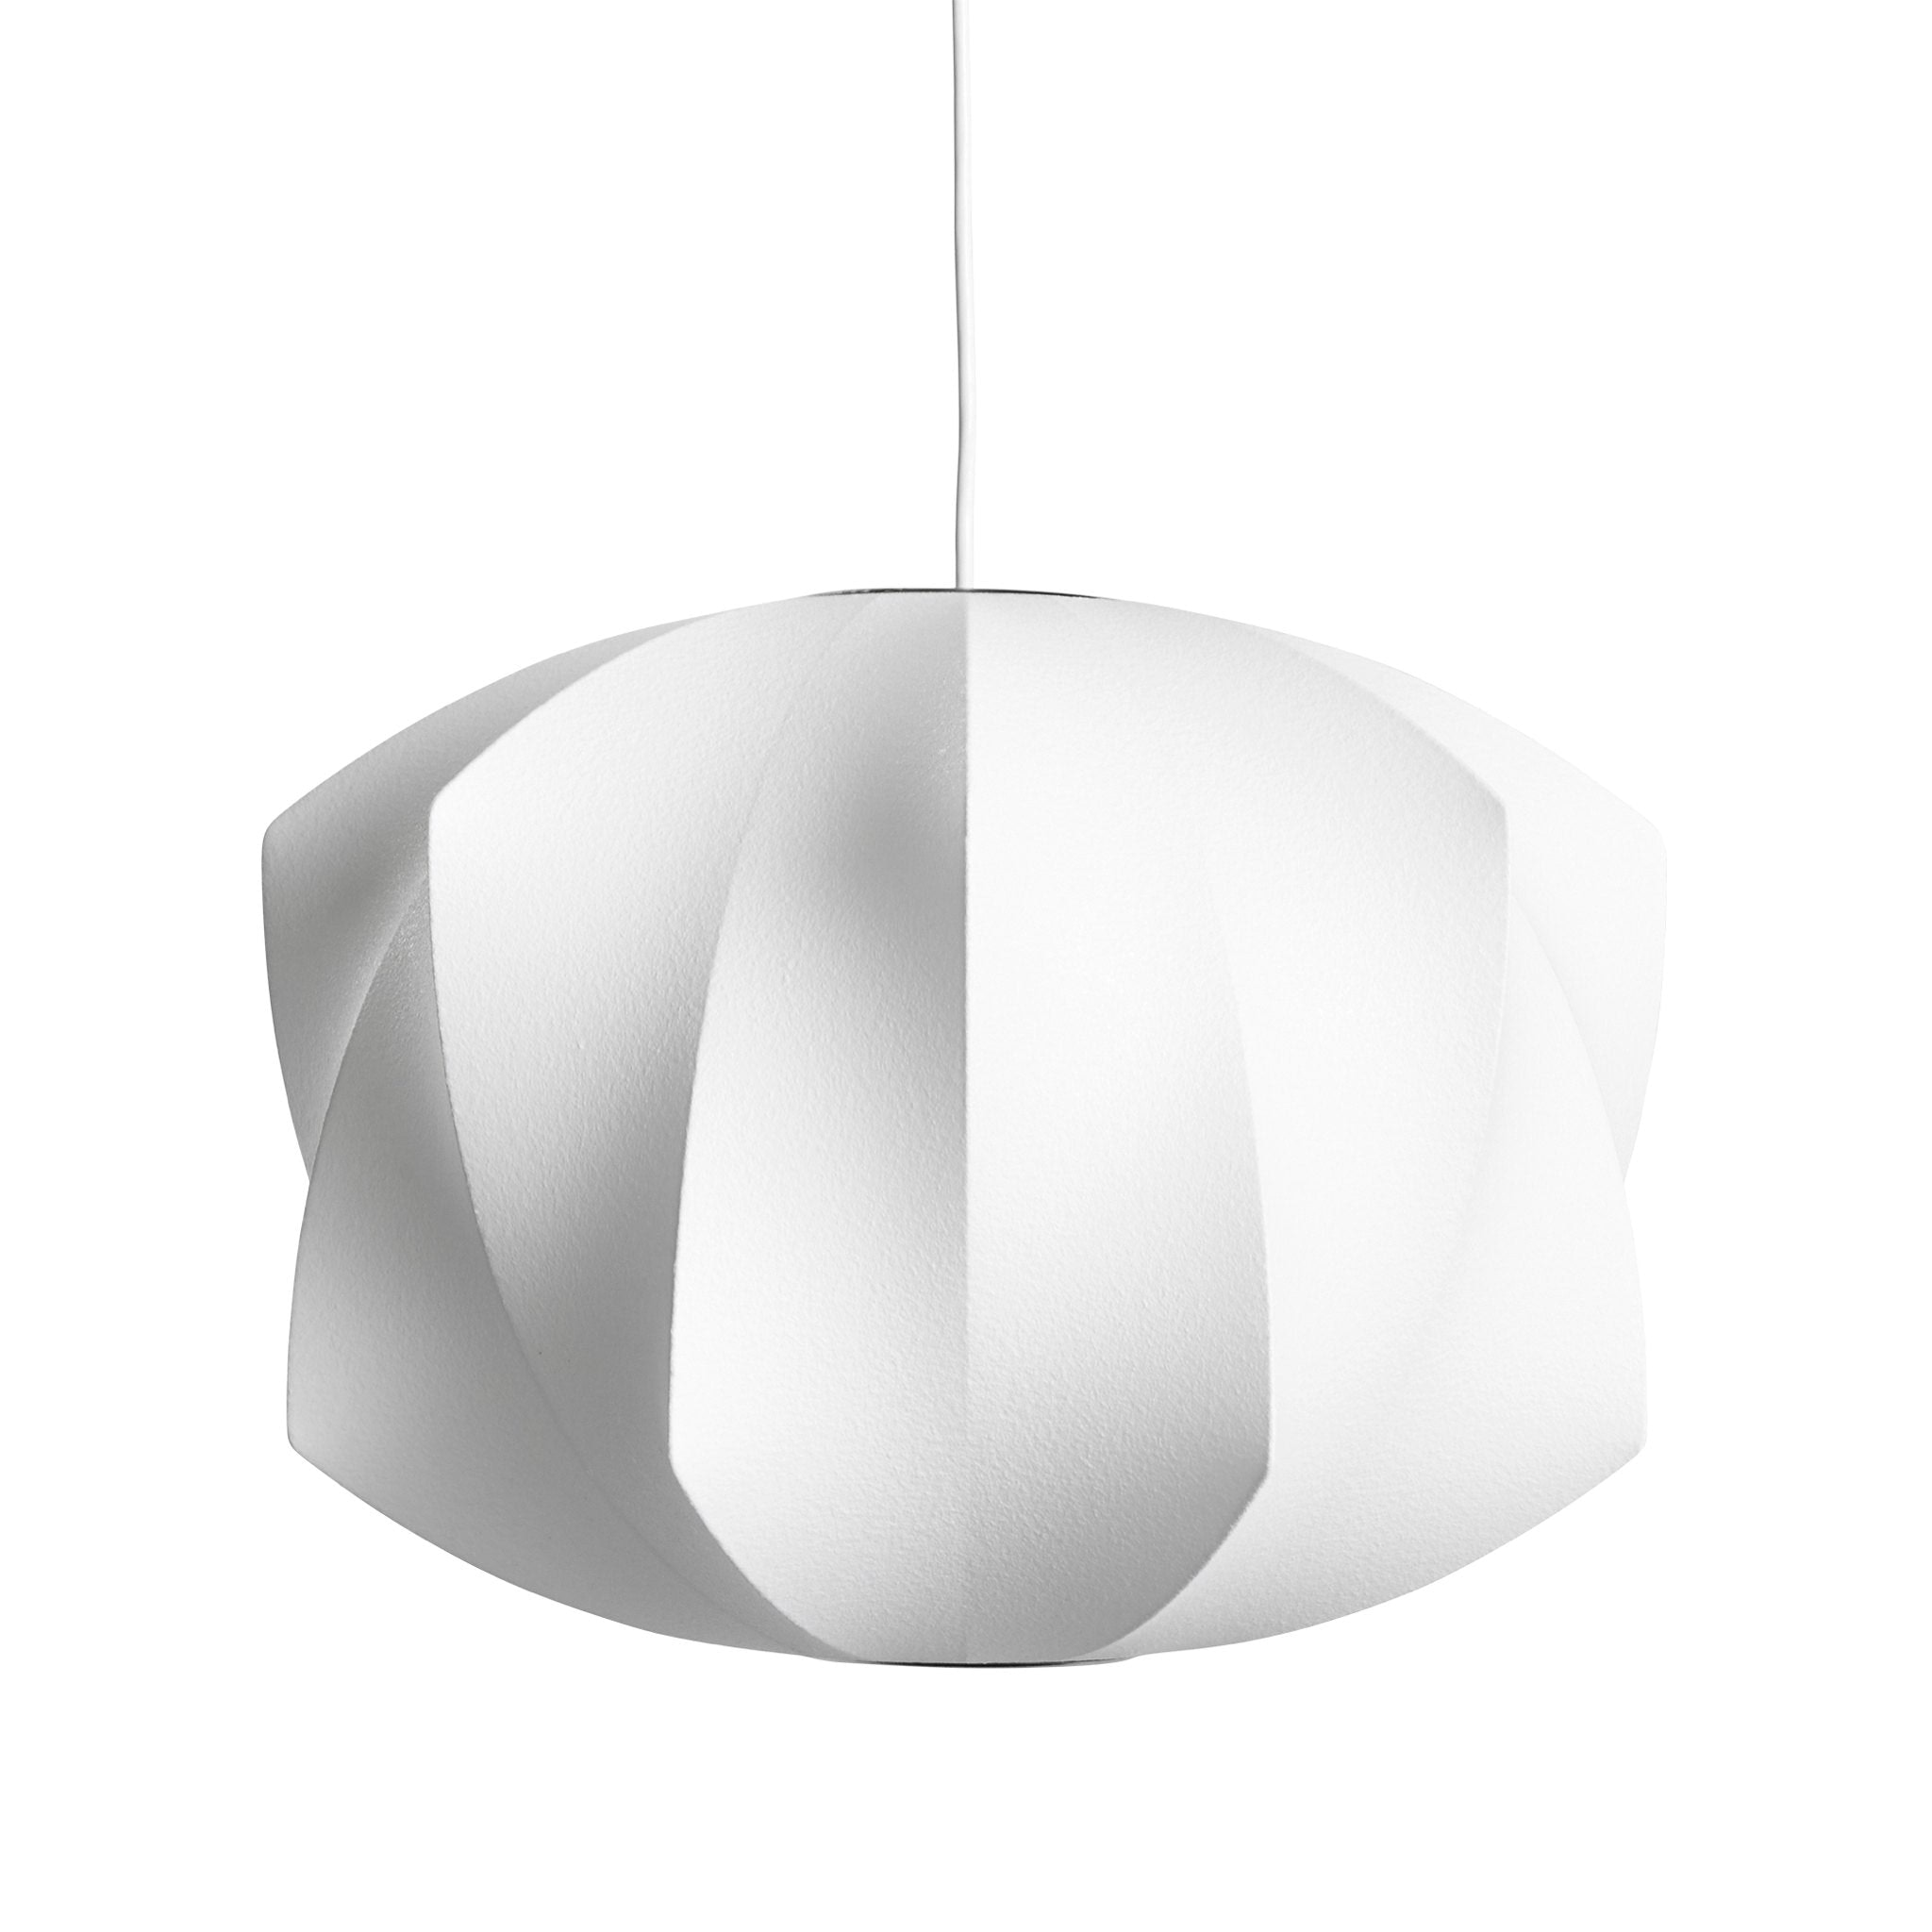 Propeller Bubble Light by Herman Miller